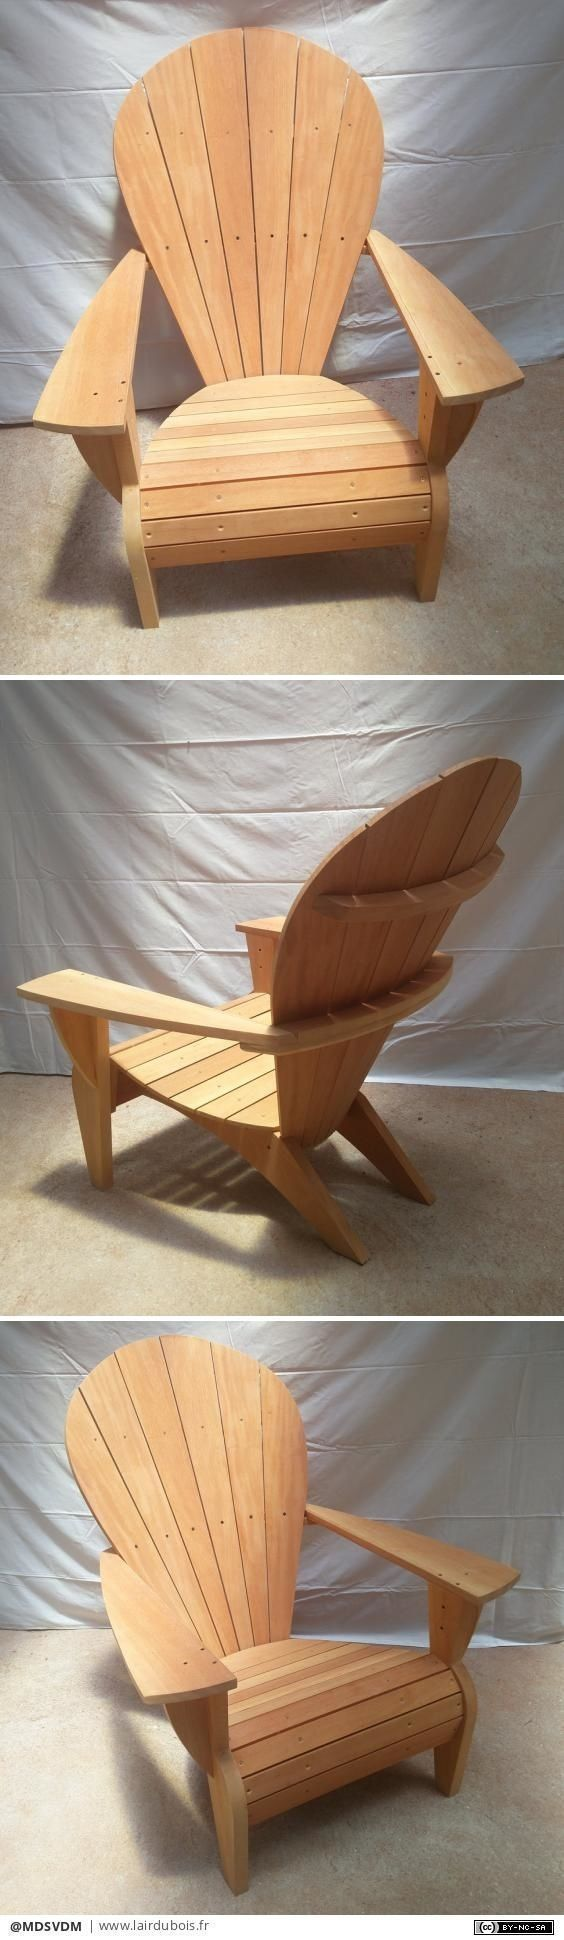 These free Adirondack chair plans will help you build a great looking chair in just a few hours. It will look great on your deck, porch, or yard #outdoorfurniture #ChairMadera